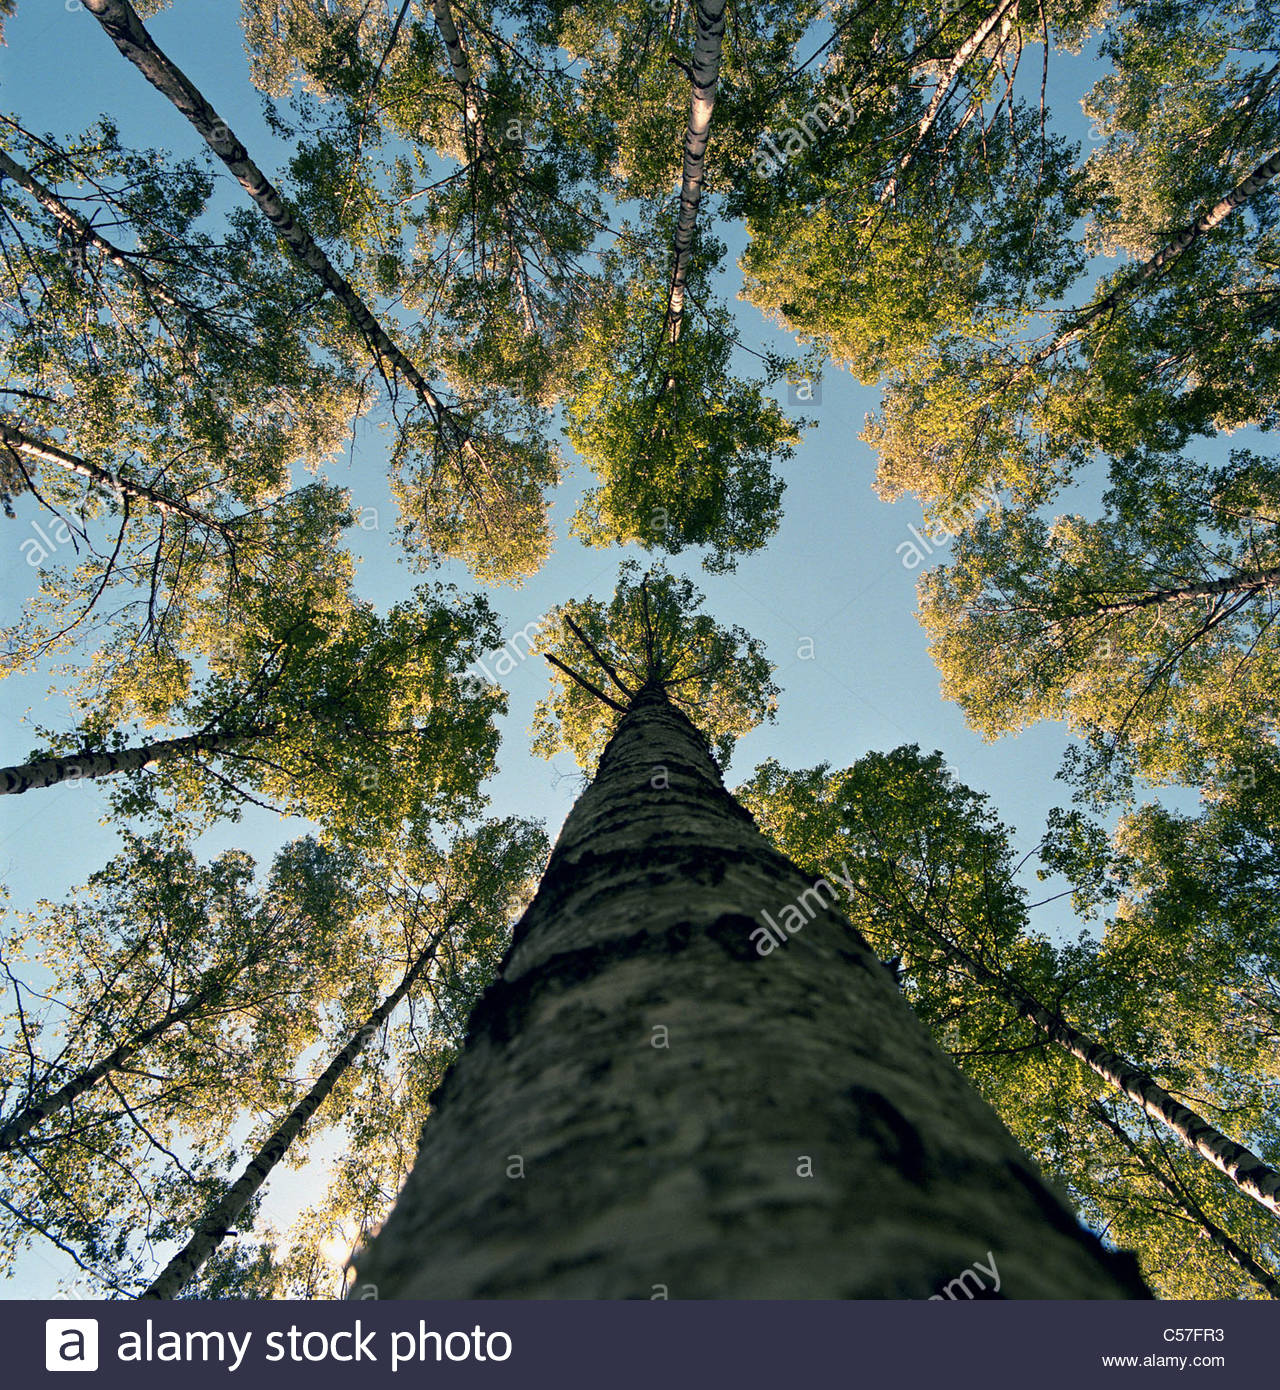 Low angle view of tall tree - Stock Image